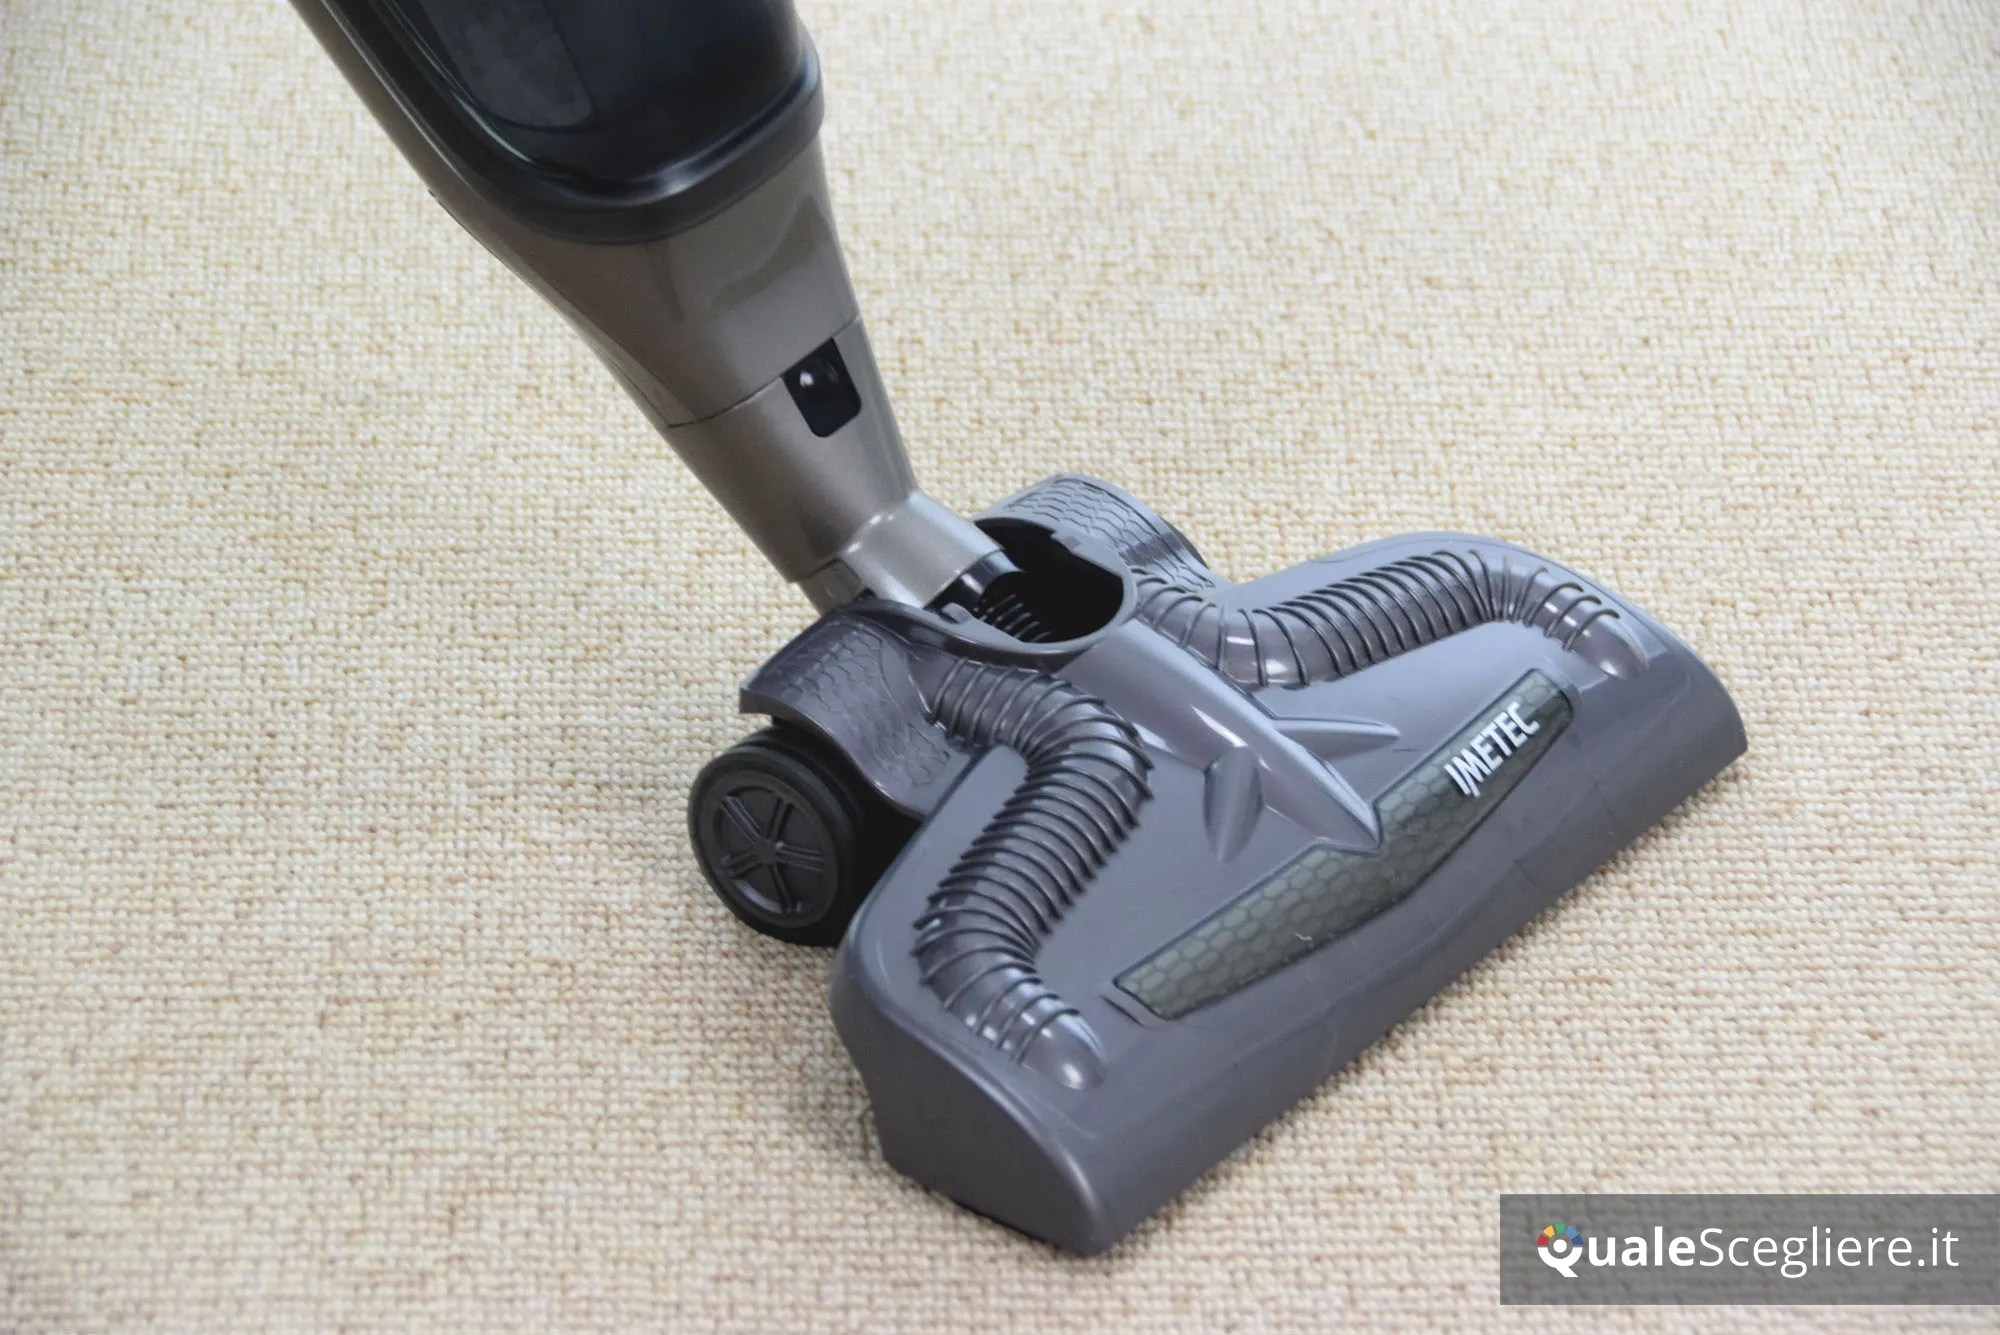 Imetec Piuma Force Cordless 25v Recensione Imetec Piuma Force Cordless 32v Qualescegliere It